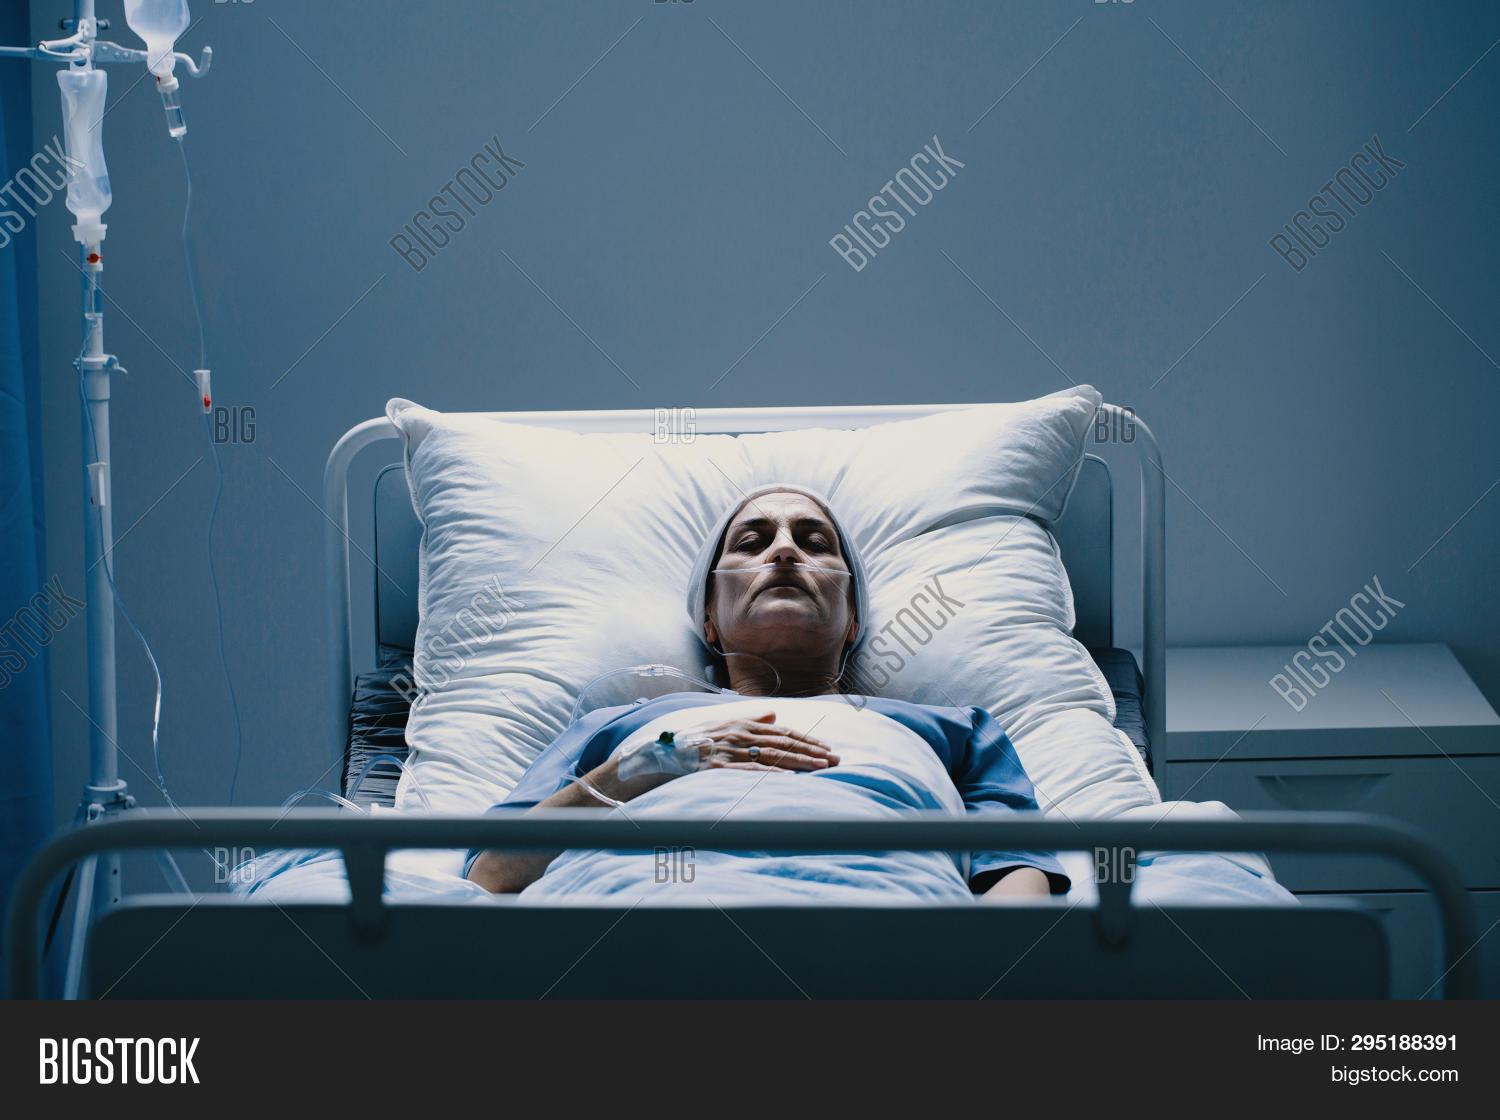 Suffering Senior Woman Image & Photo (Free Trial) | Bigstock